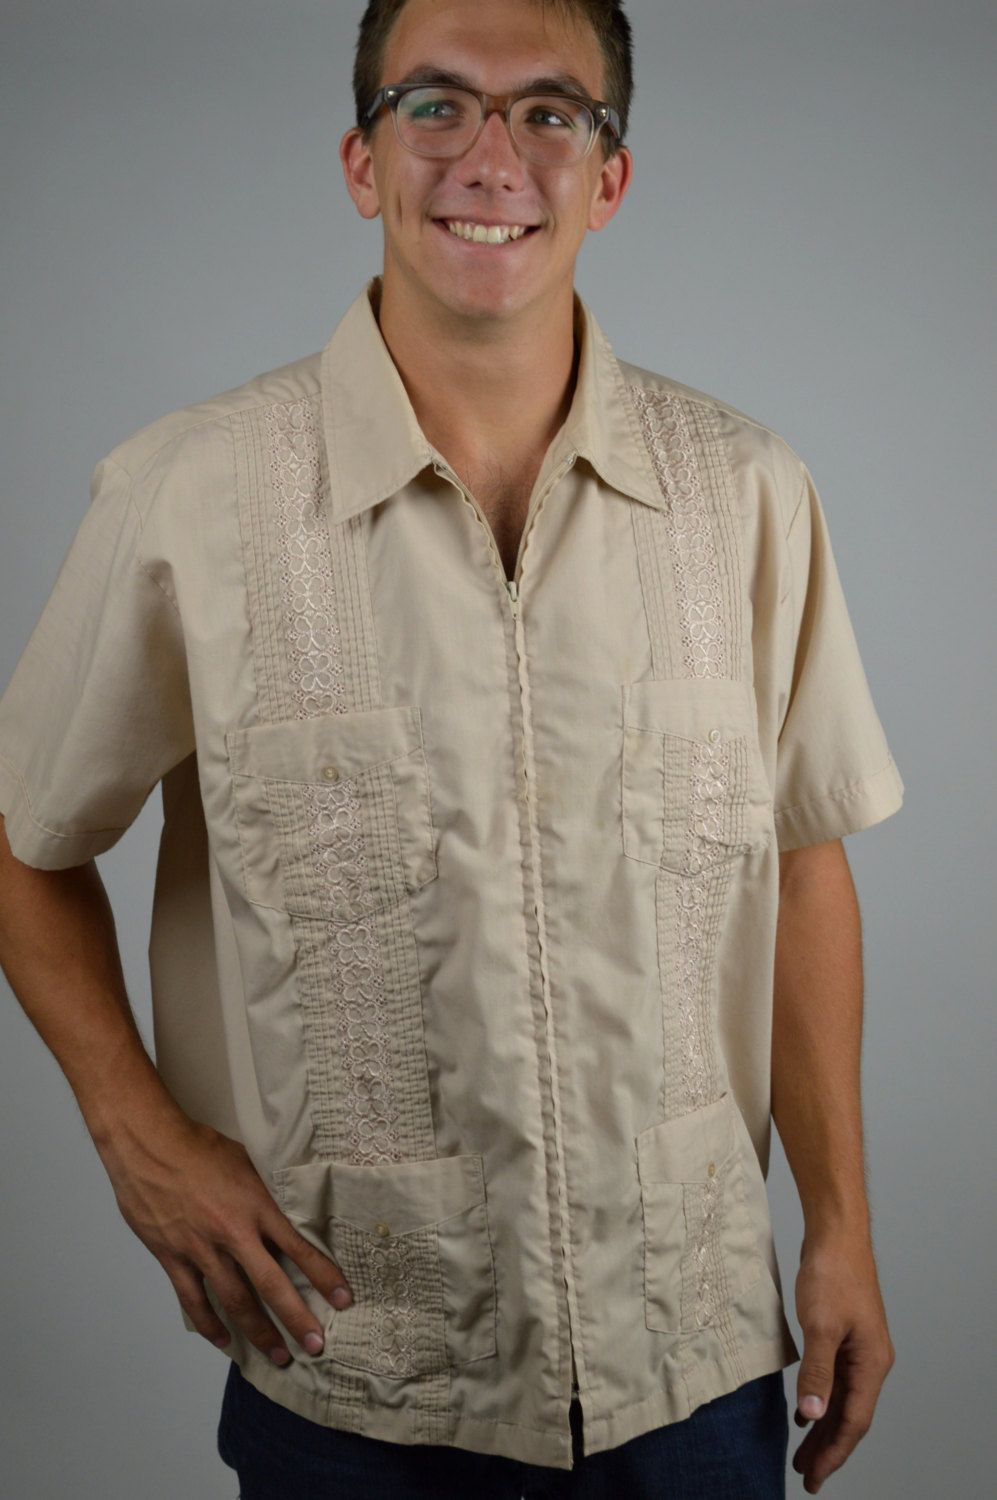 Guayabera Shirt Mens Vintage Shirt Haband Shirt Sand Shirt Beach Wedding Embroidered Shirt